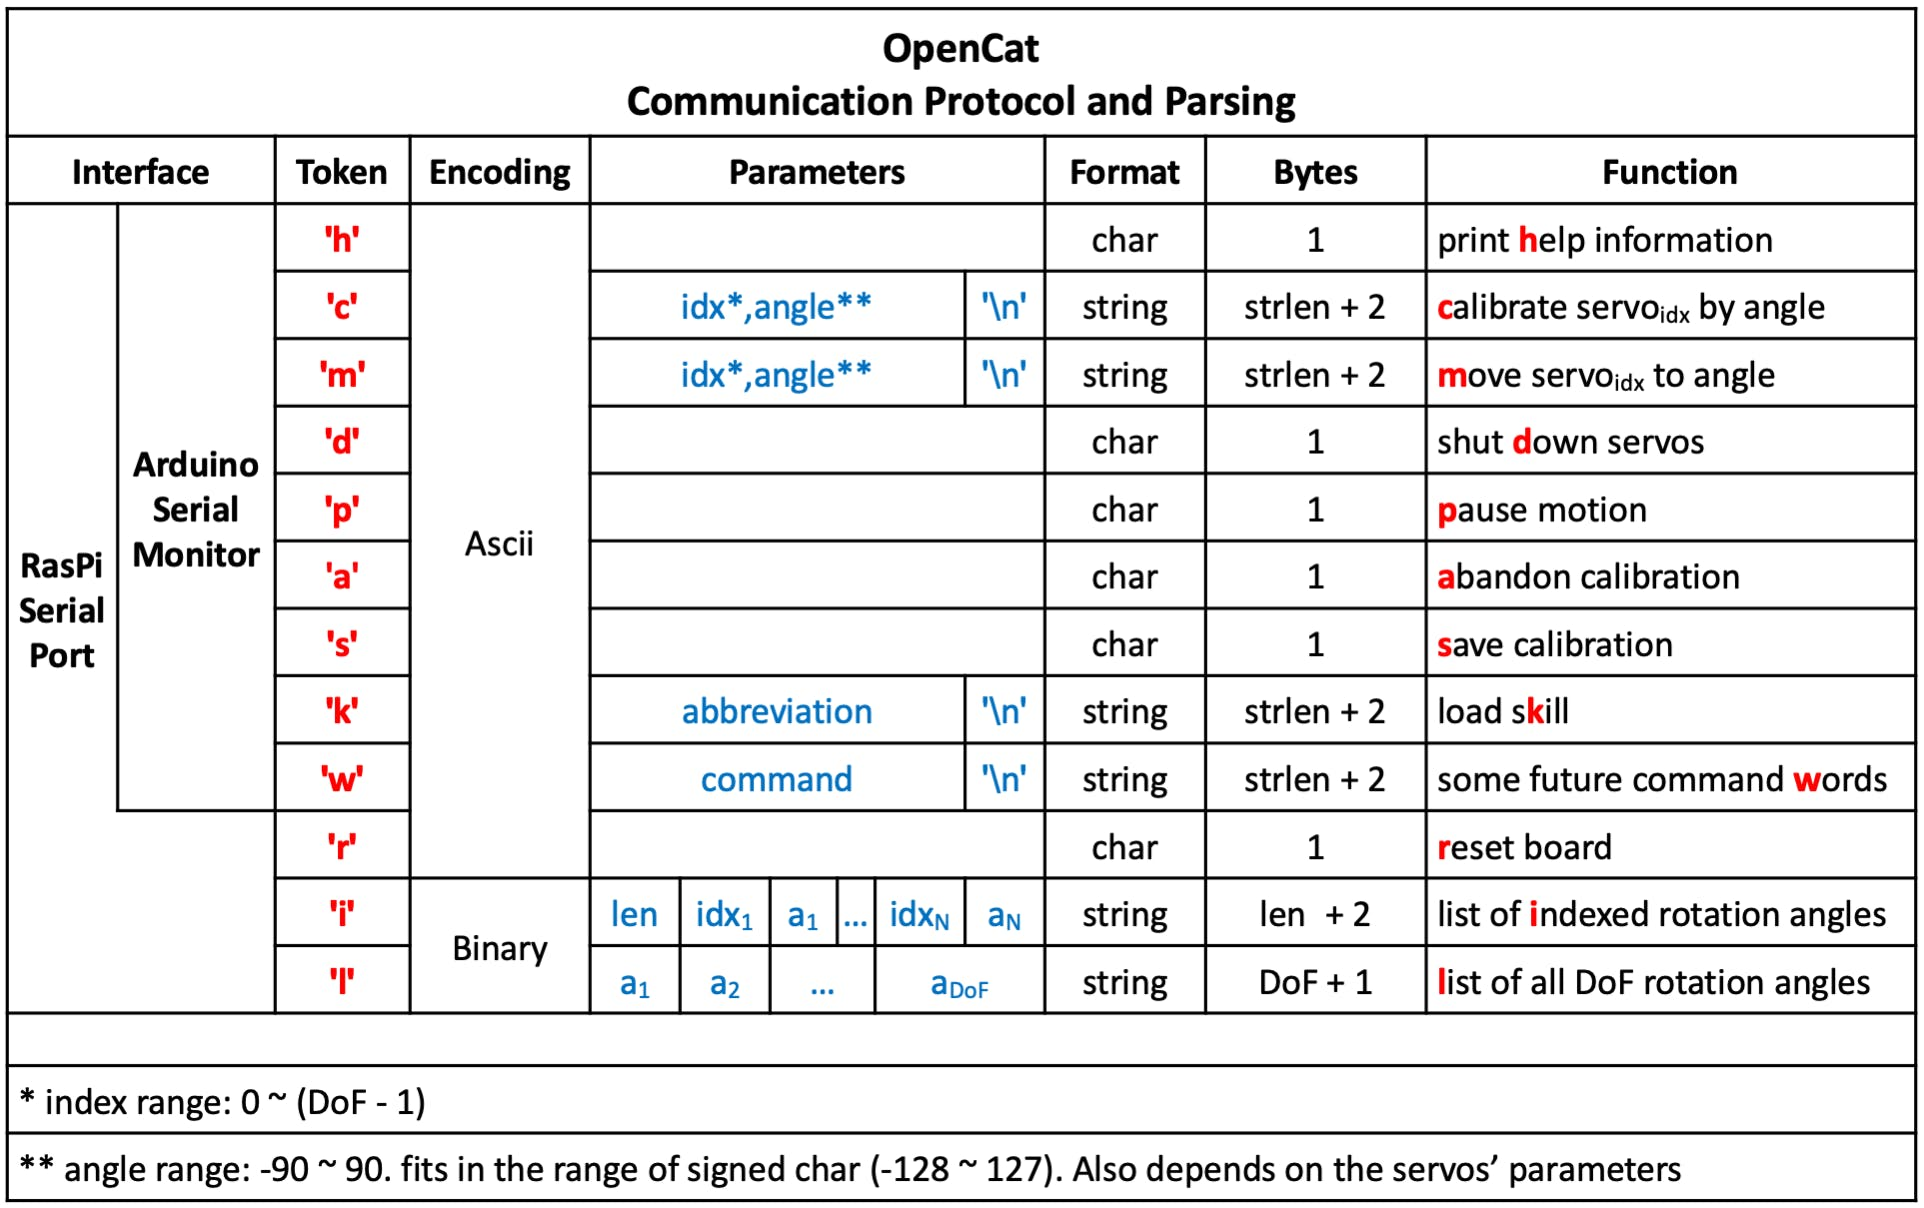 Communication protocol and parsing rules